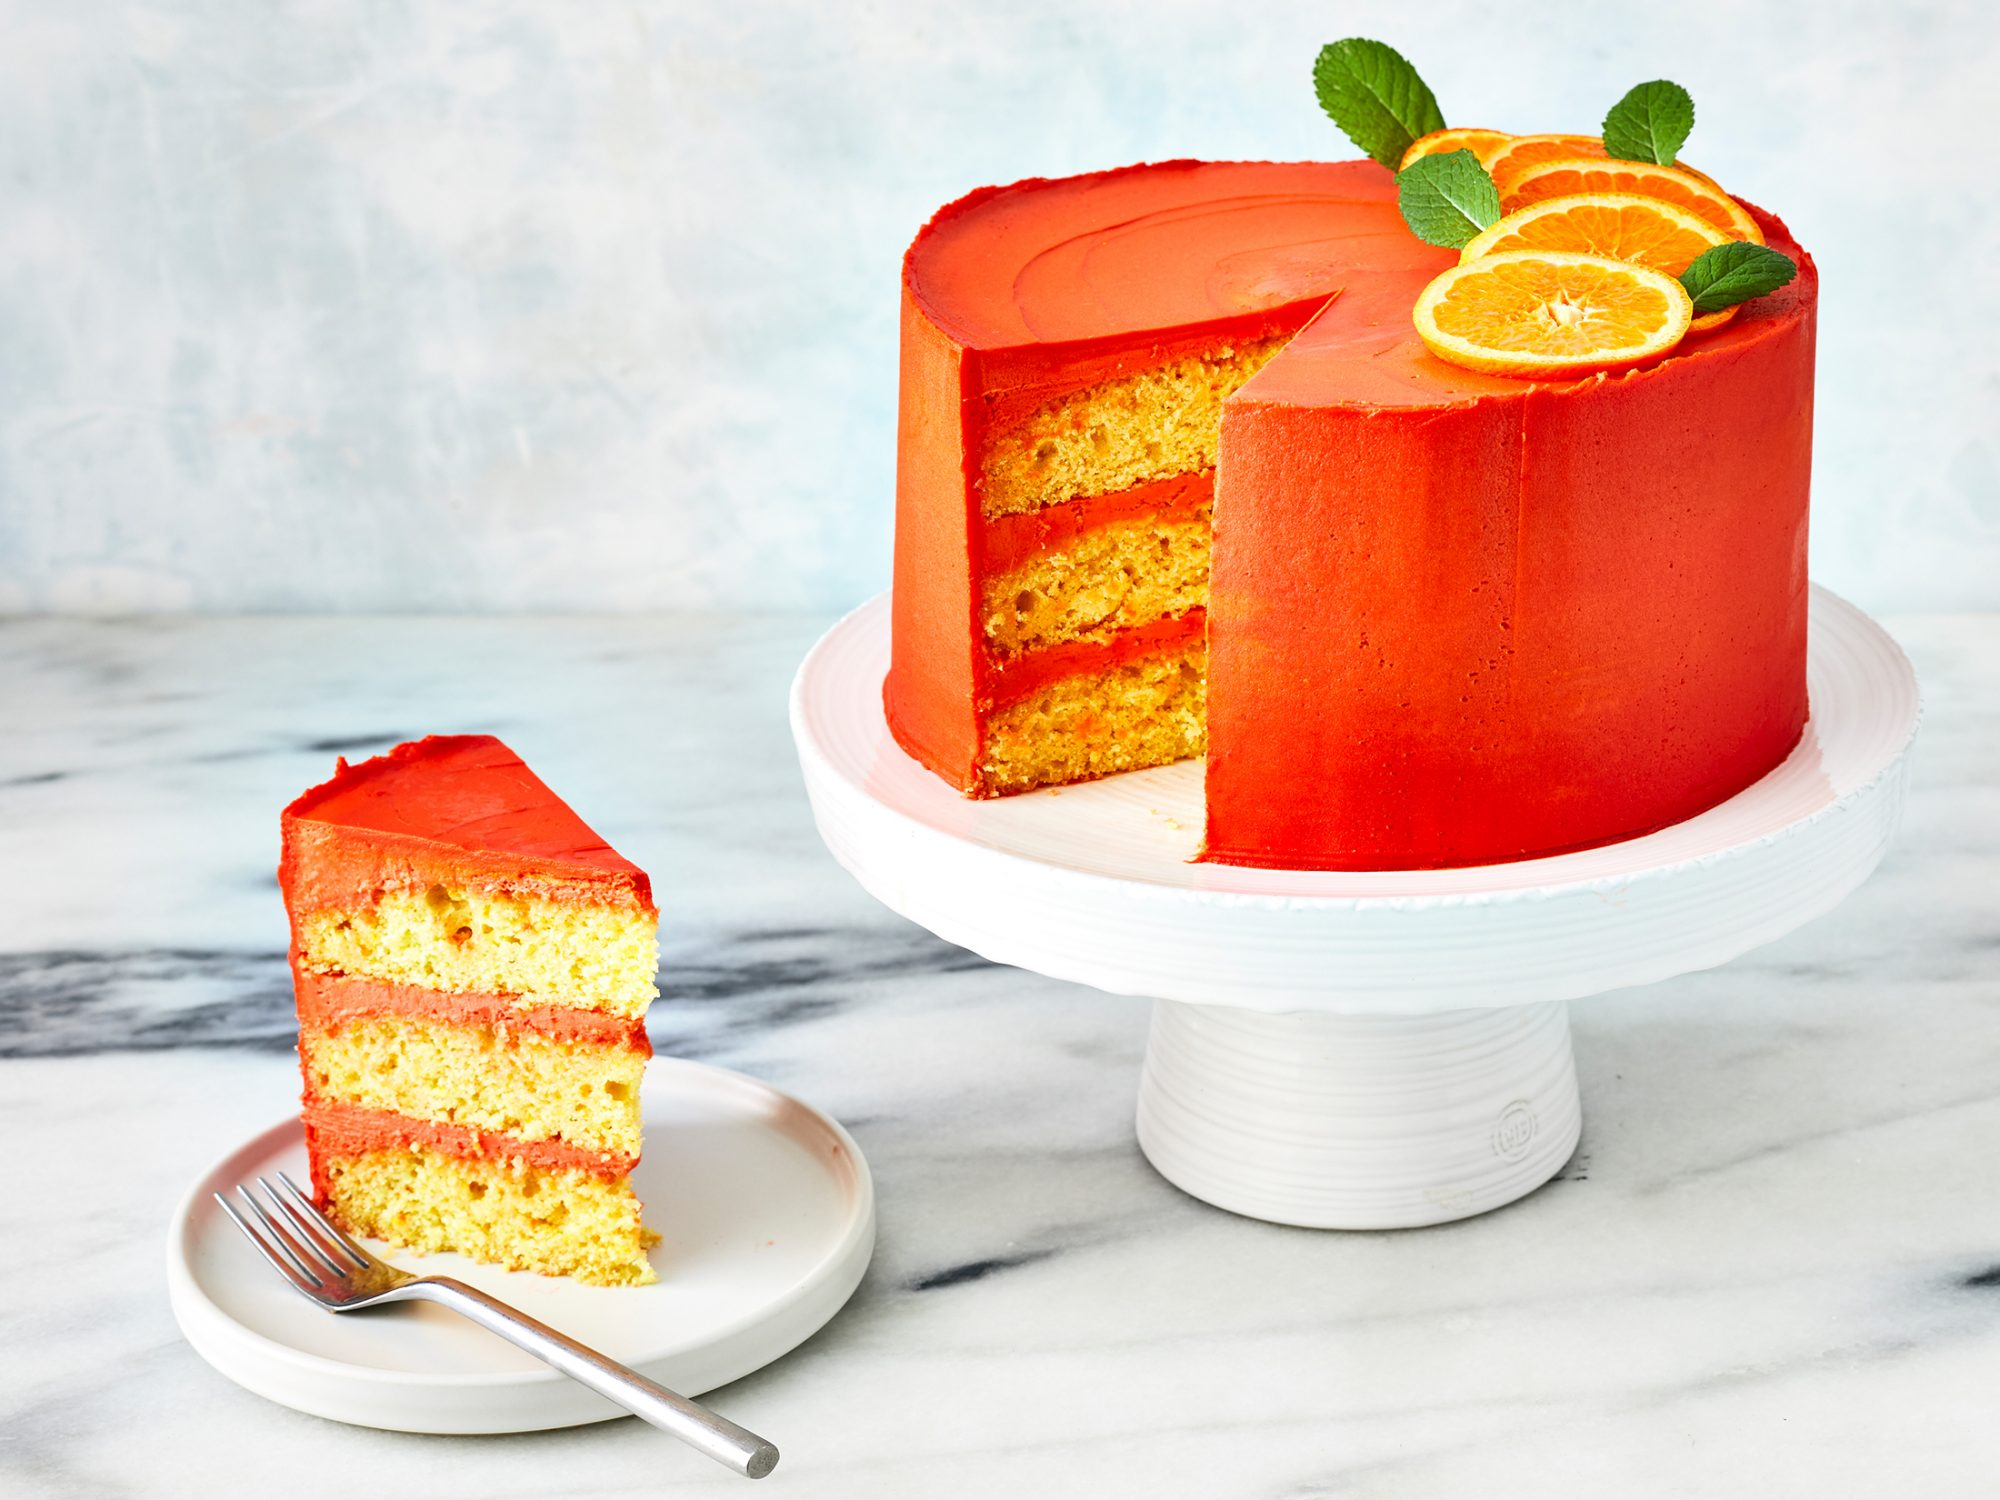 The Aperol Spritz Is Good, and This Aperol Spritz Cake Is Even Better